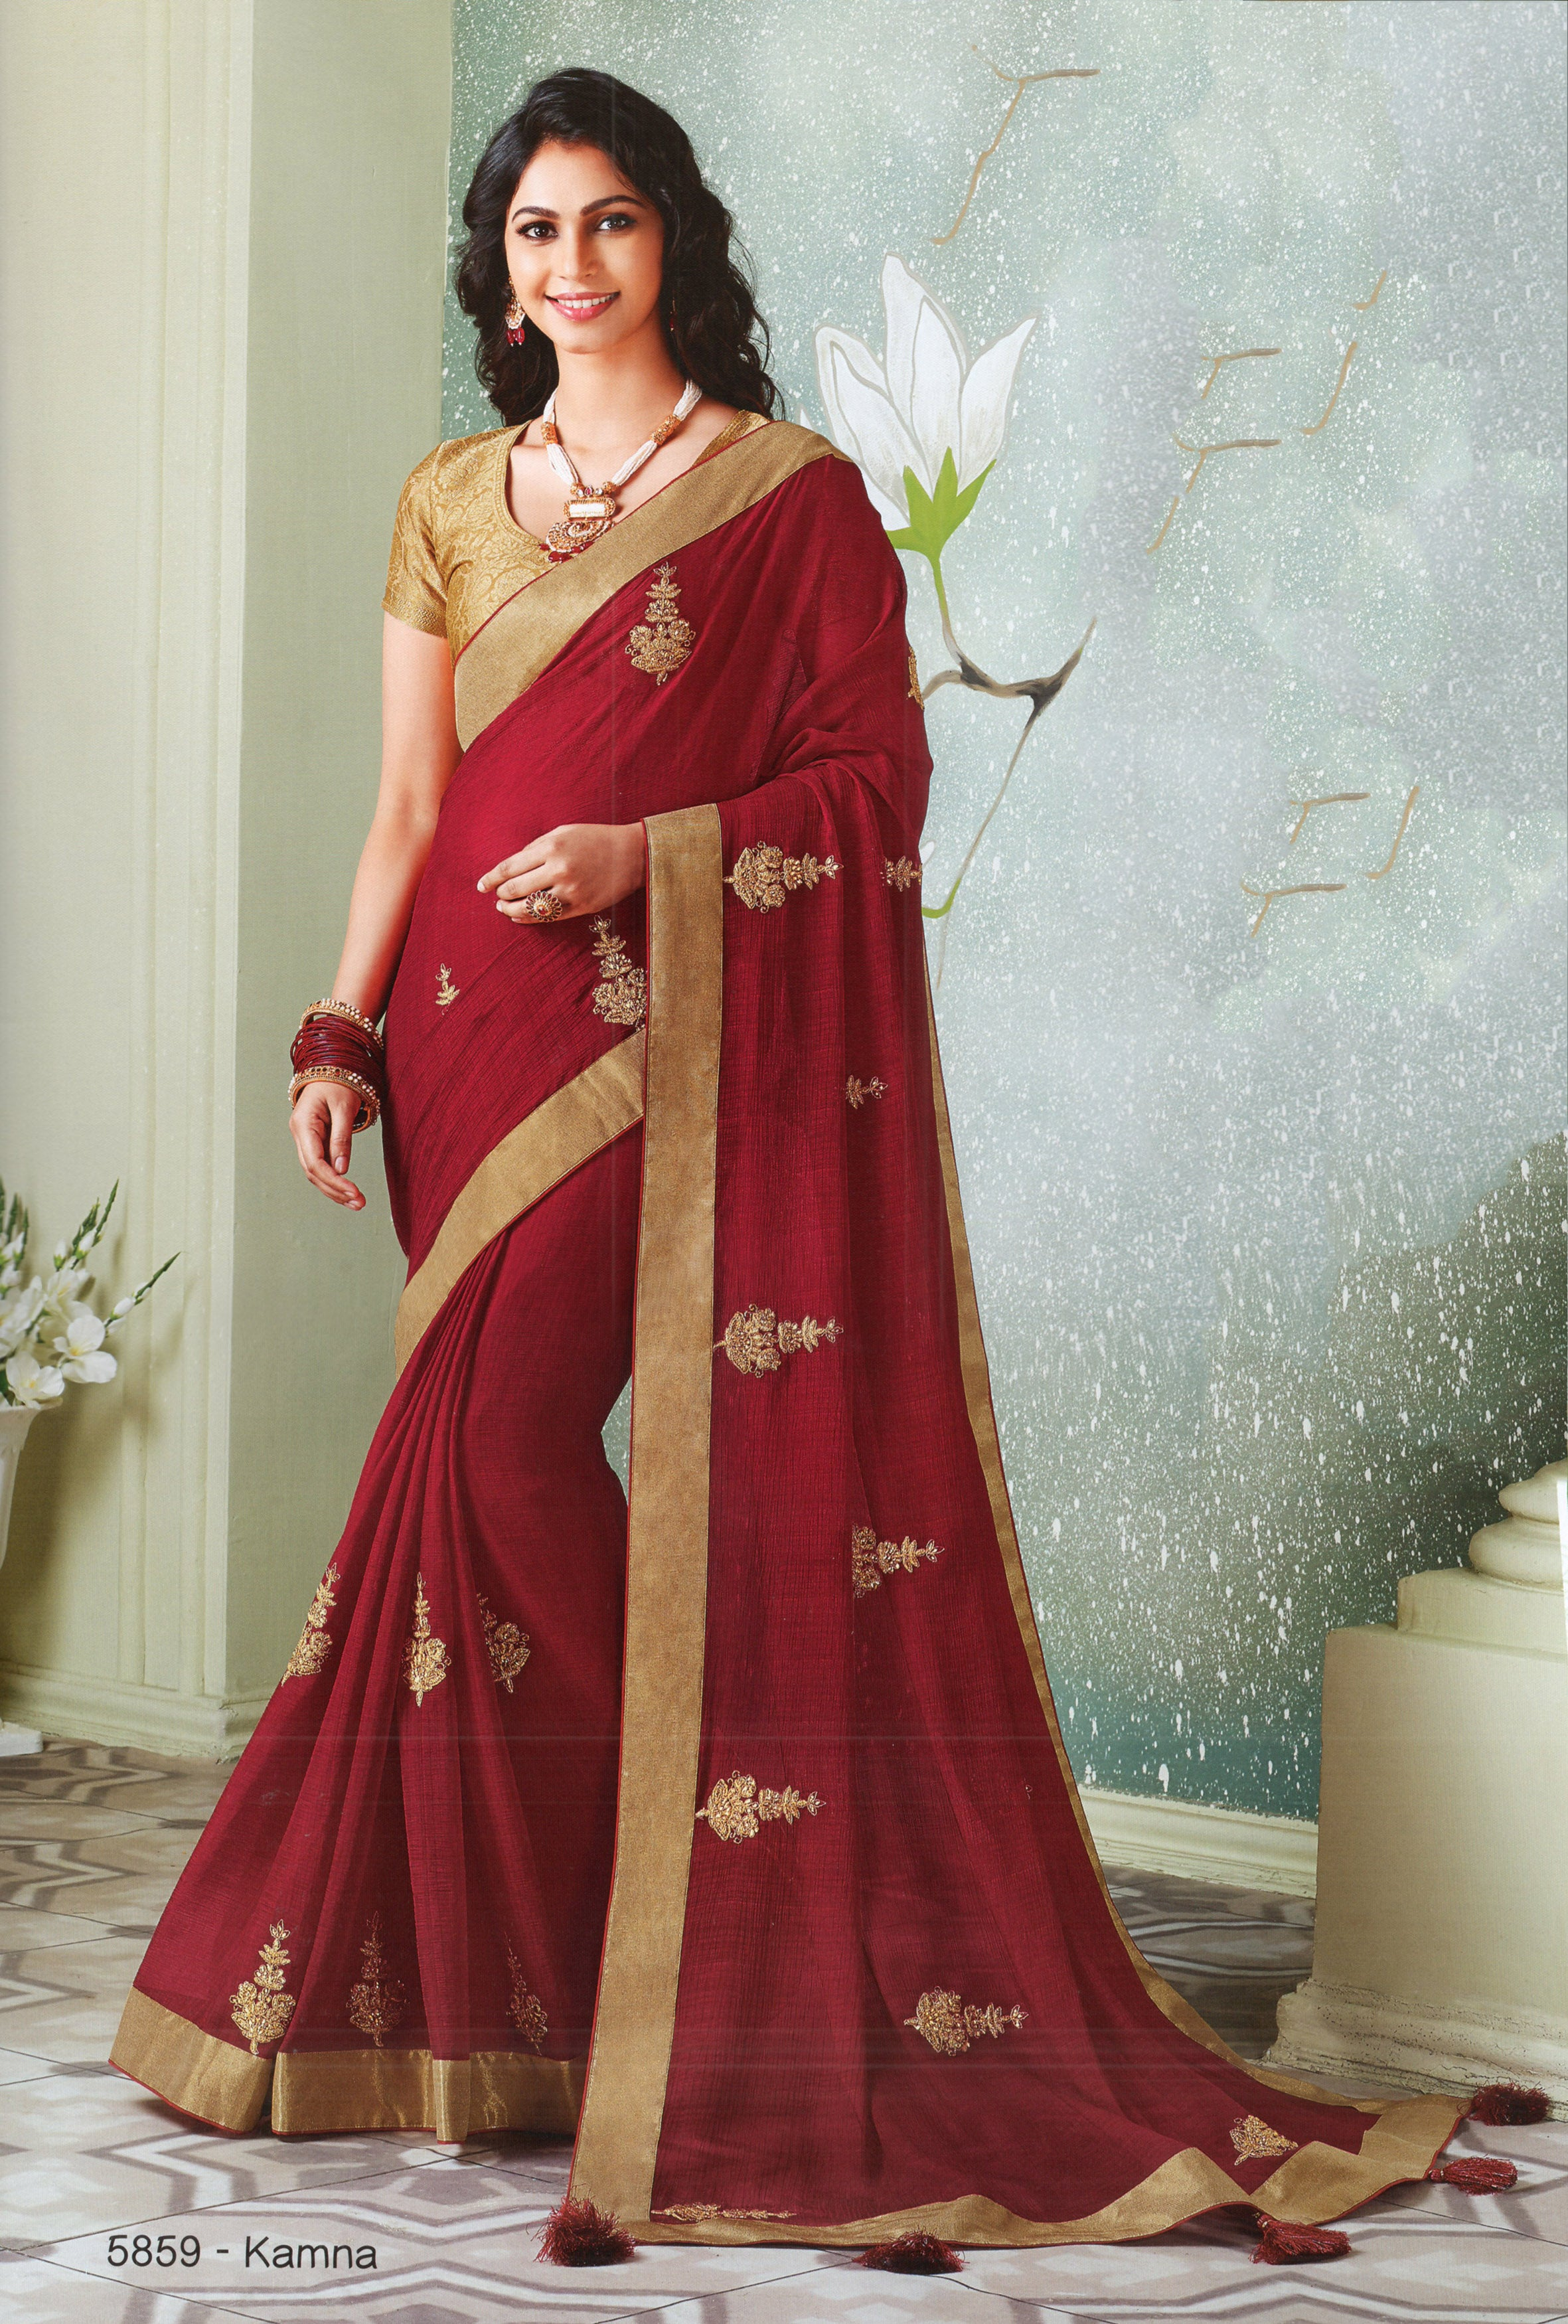 Laxmipati Cham Cham Embroidered  Chiffon  Saree With Blouse Piece  (Wine) By Indians Boutique